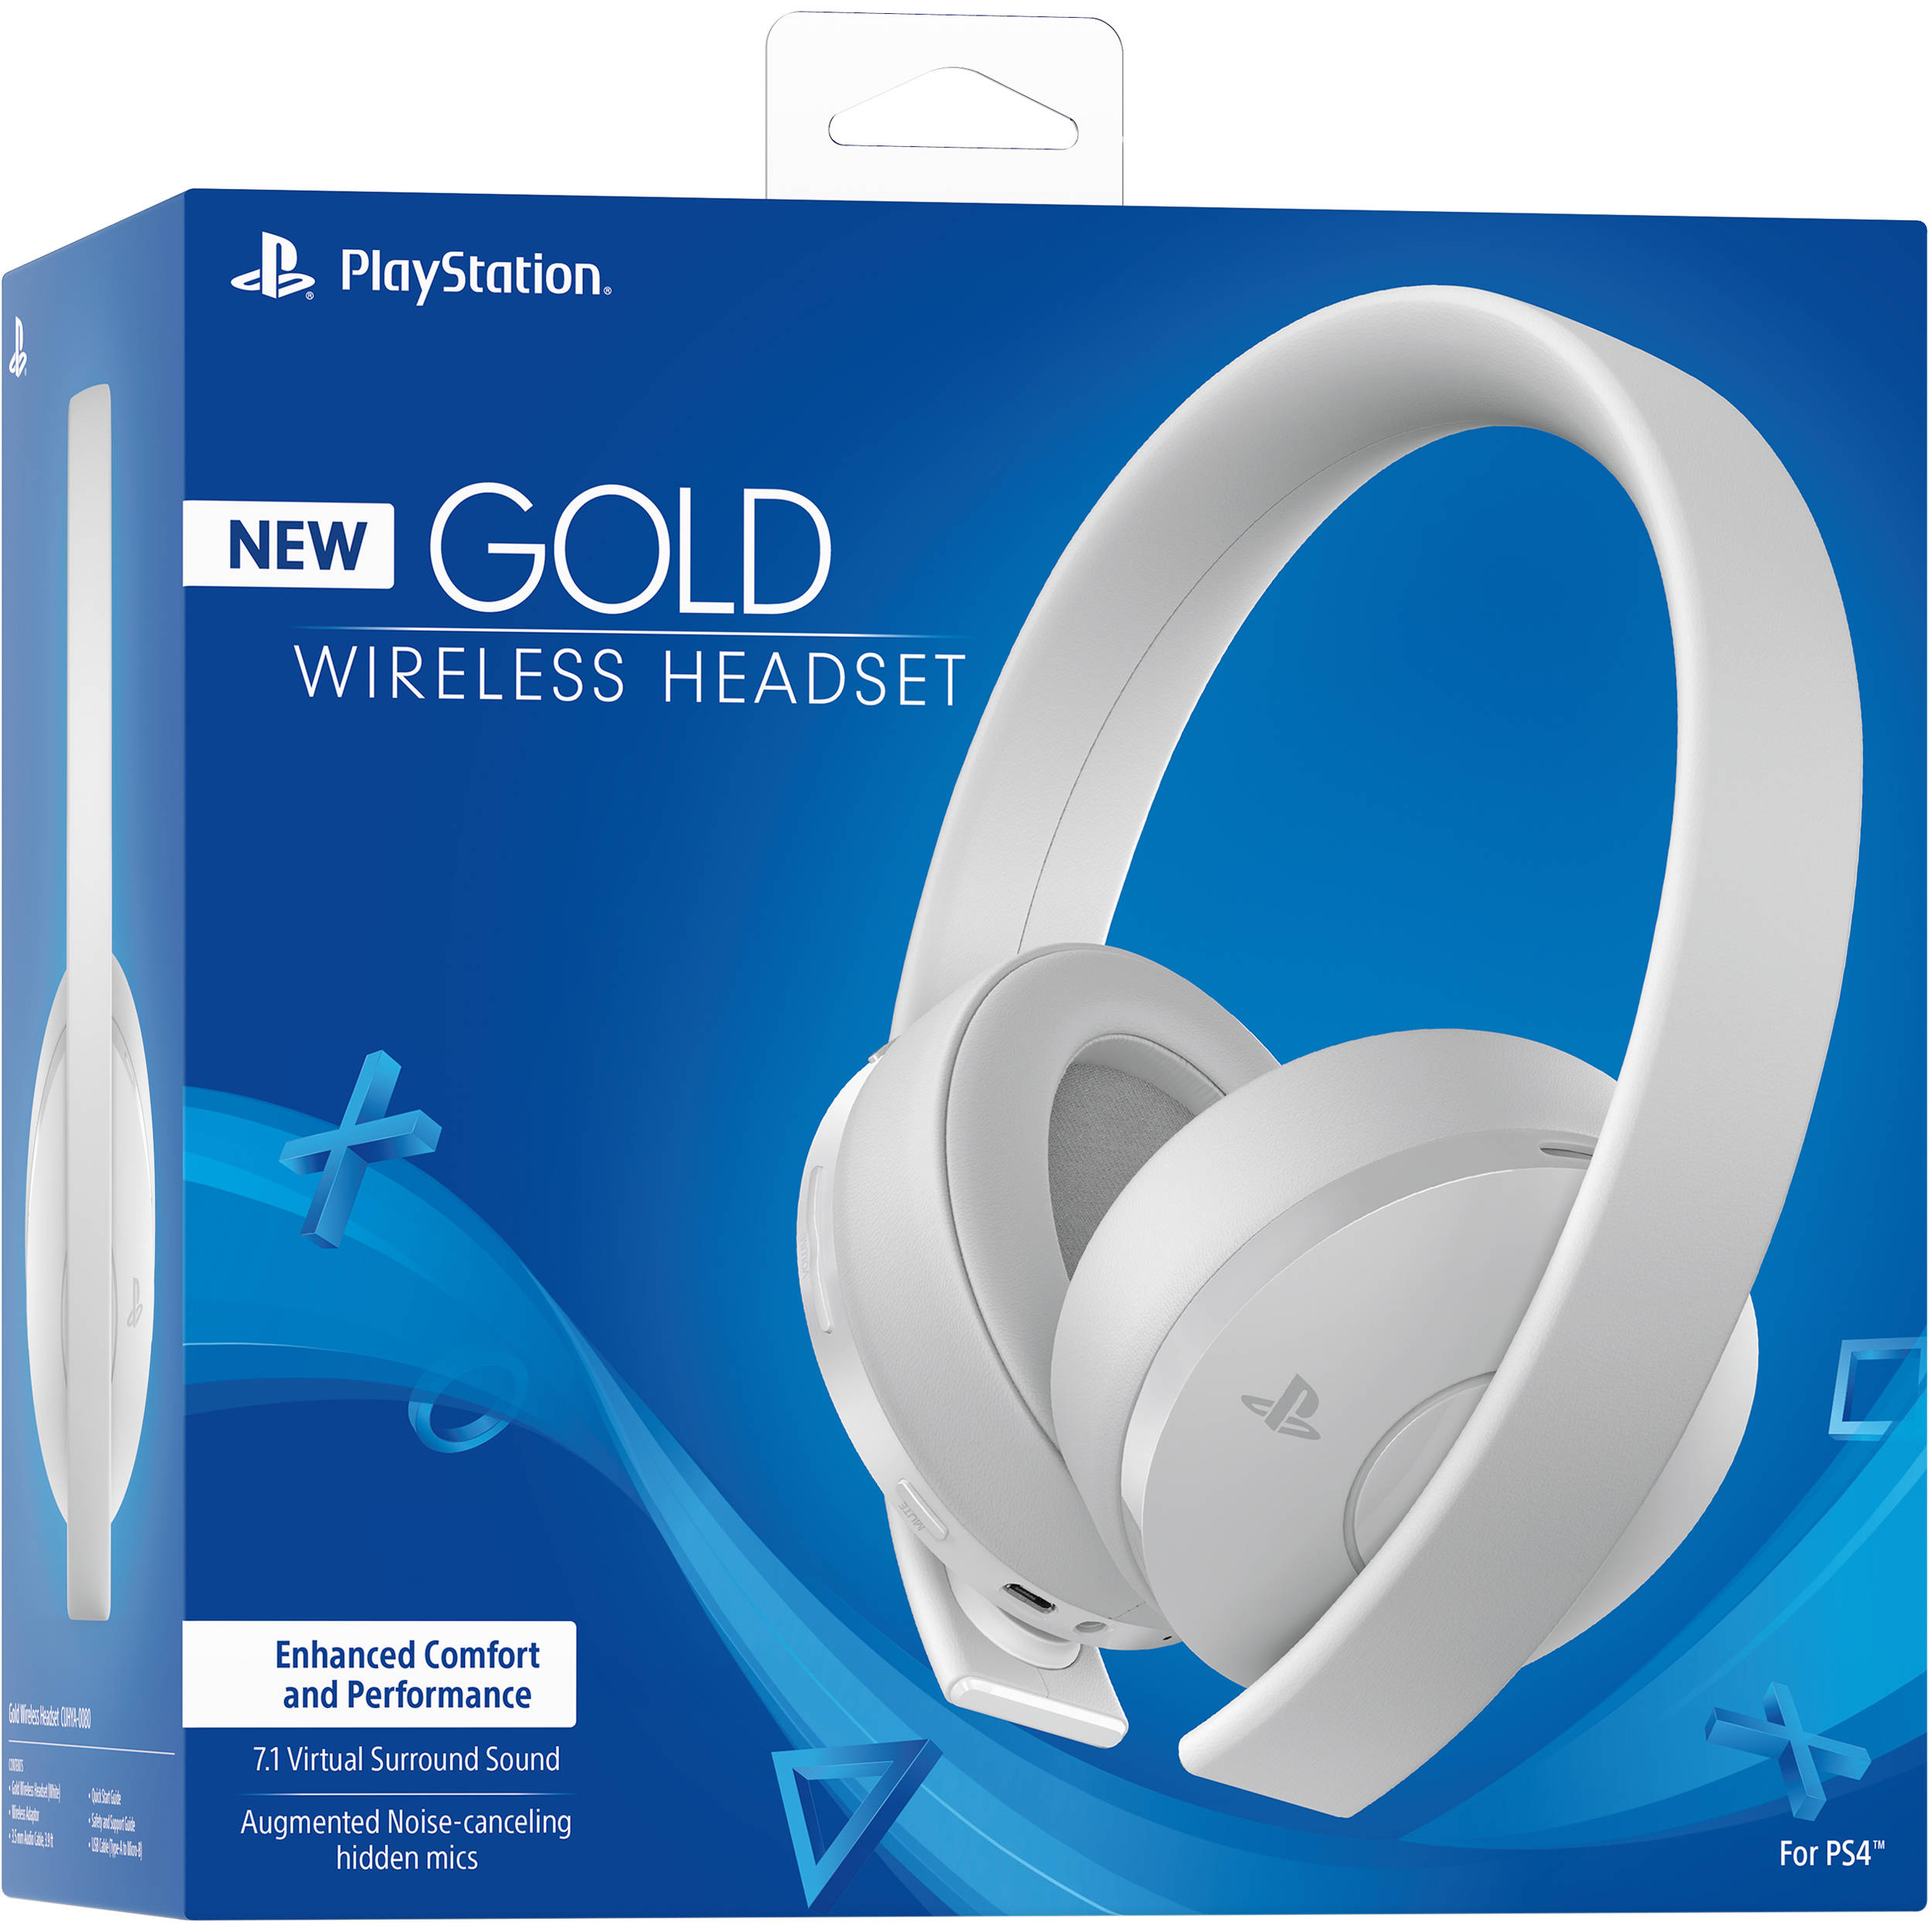 New Gold Wireless Headset